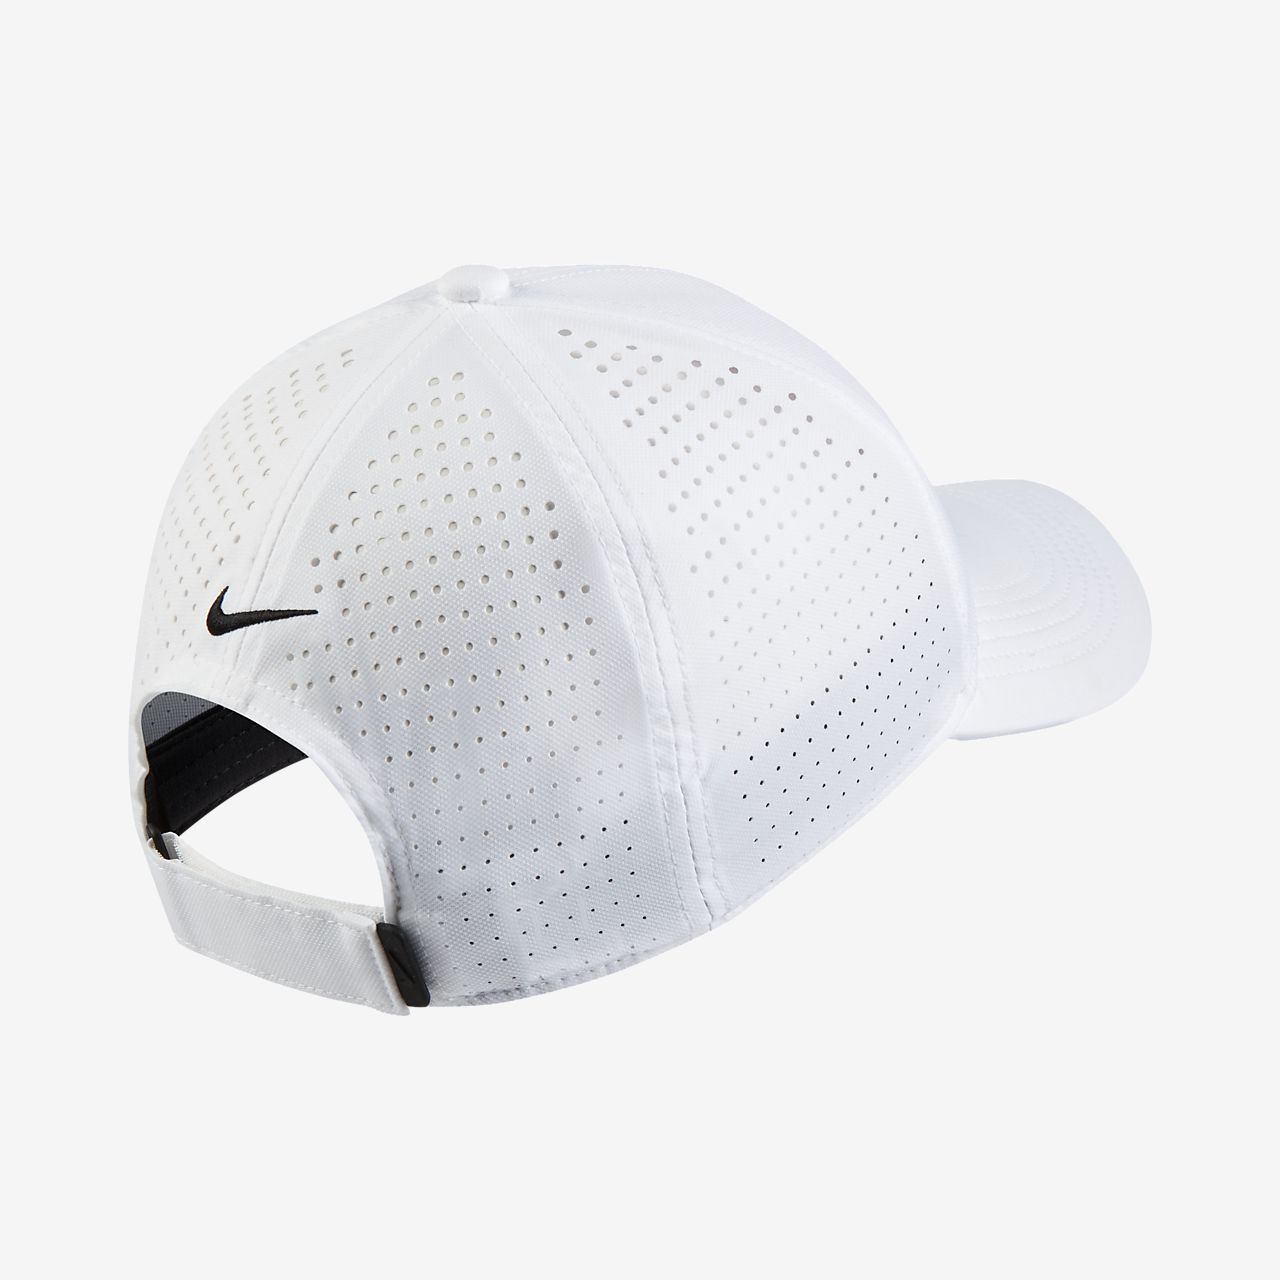 90a17d89e1105 Nike Legacy 91 Perforated Adjustable Golf Hat. Nike.com